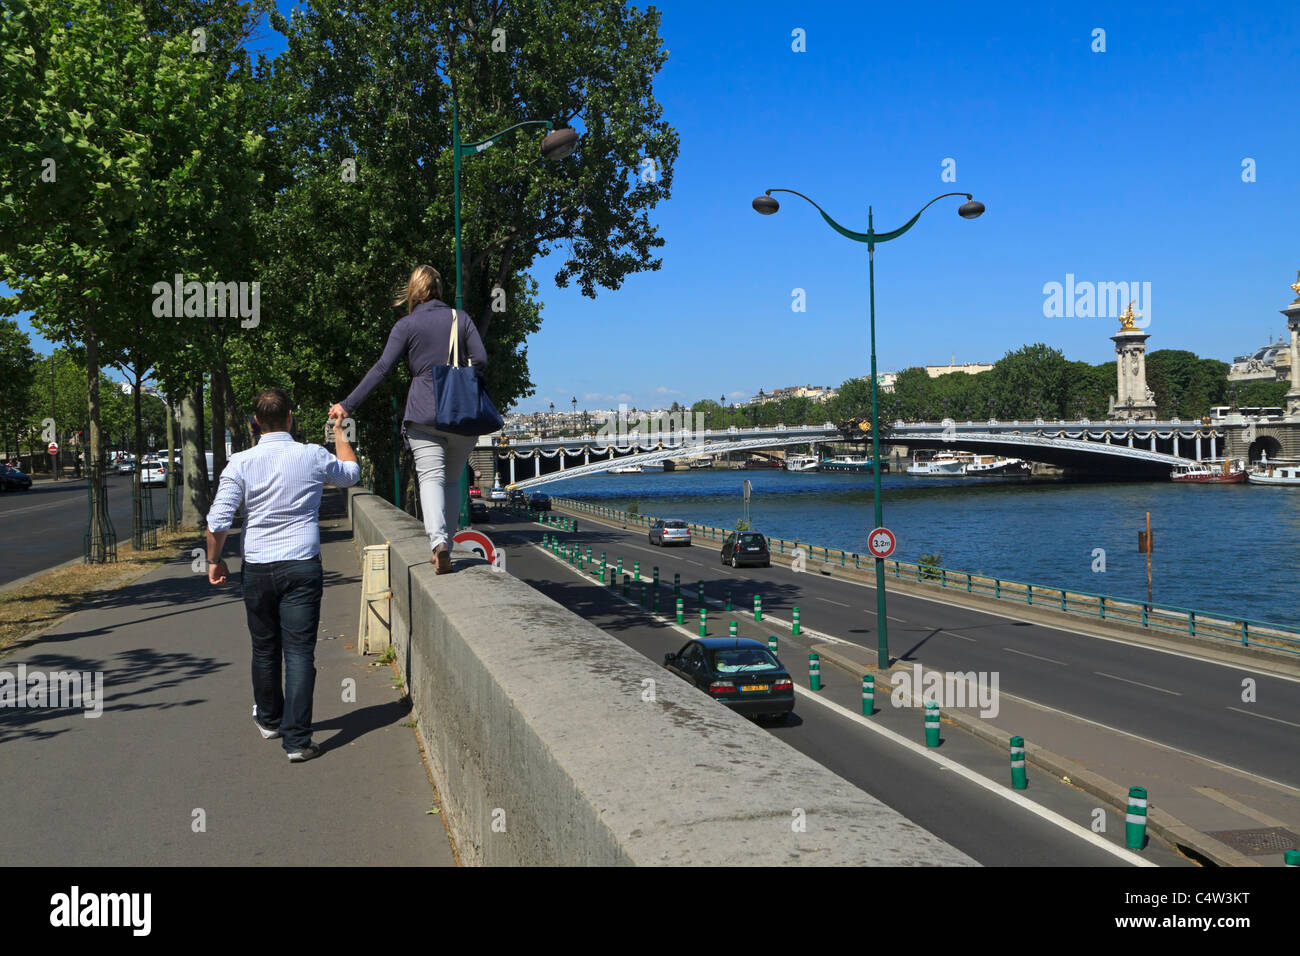 Sightseeing in Paris. A couple walk along the Quay D'Orsay beside the Seine River towards Pont Alexandre III. Stock Photo